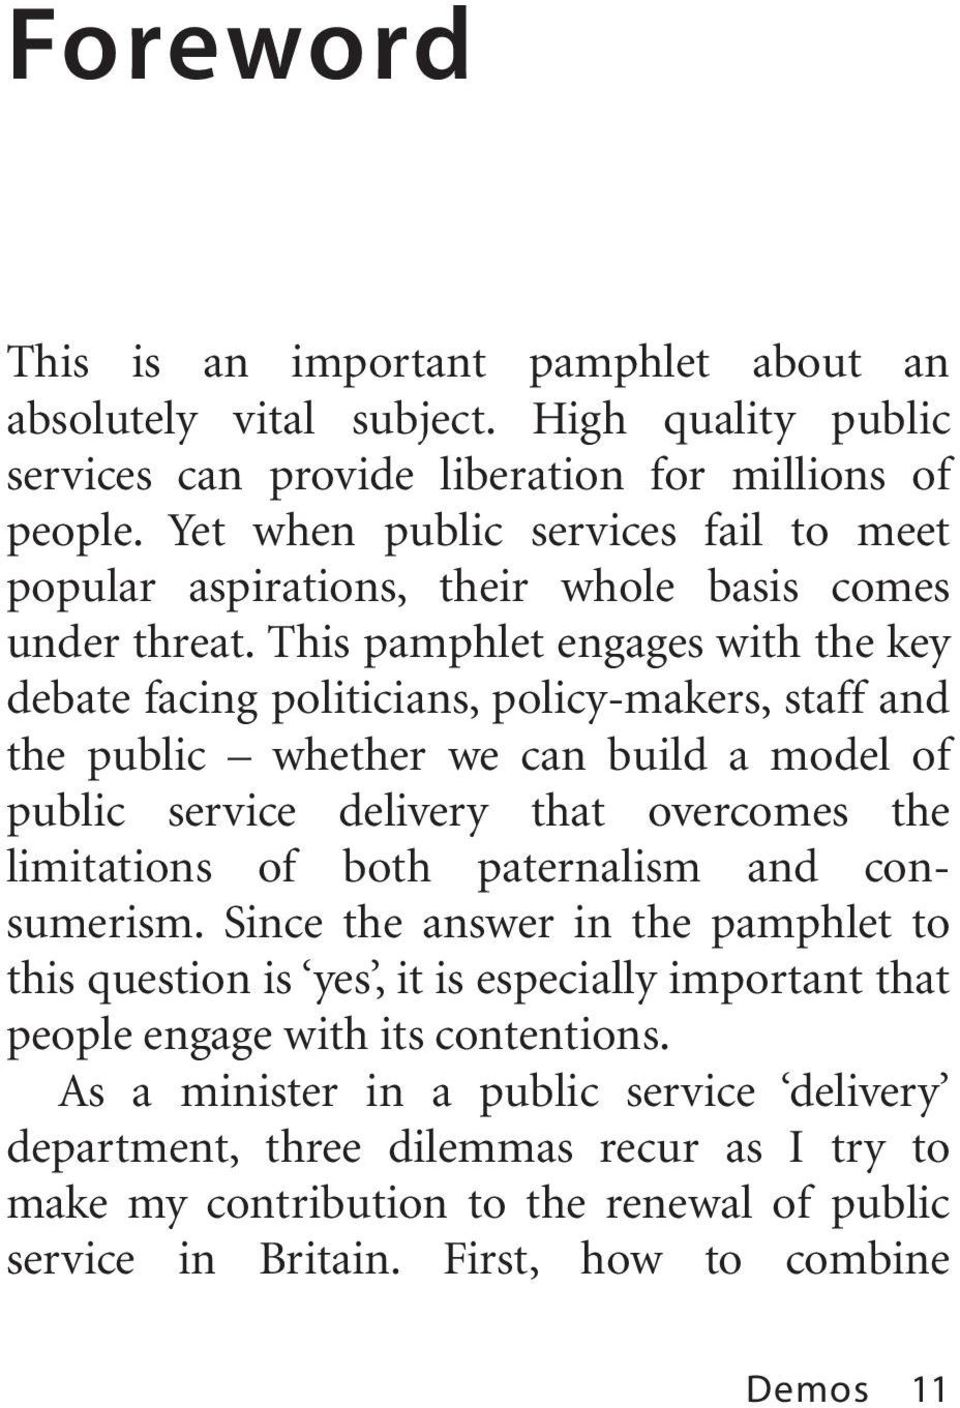 This pamphlet engages with the key debate facing politicians, policy-makers, staff and the public whether we can build a model of public service delivery that overcomes the limitations of both